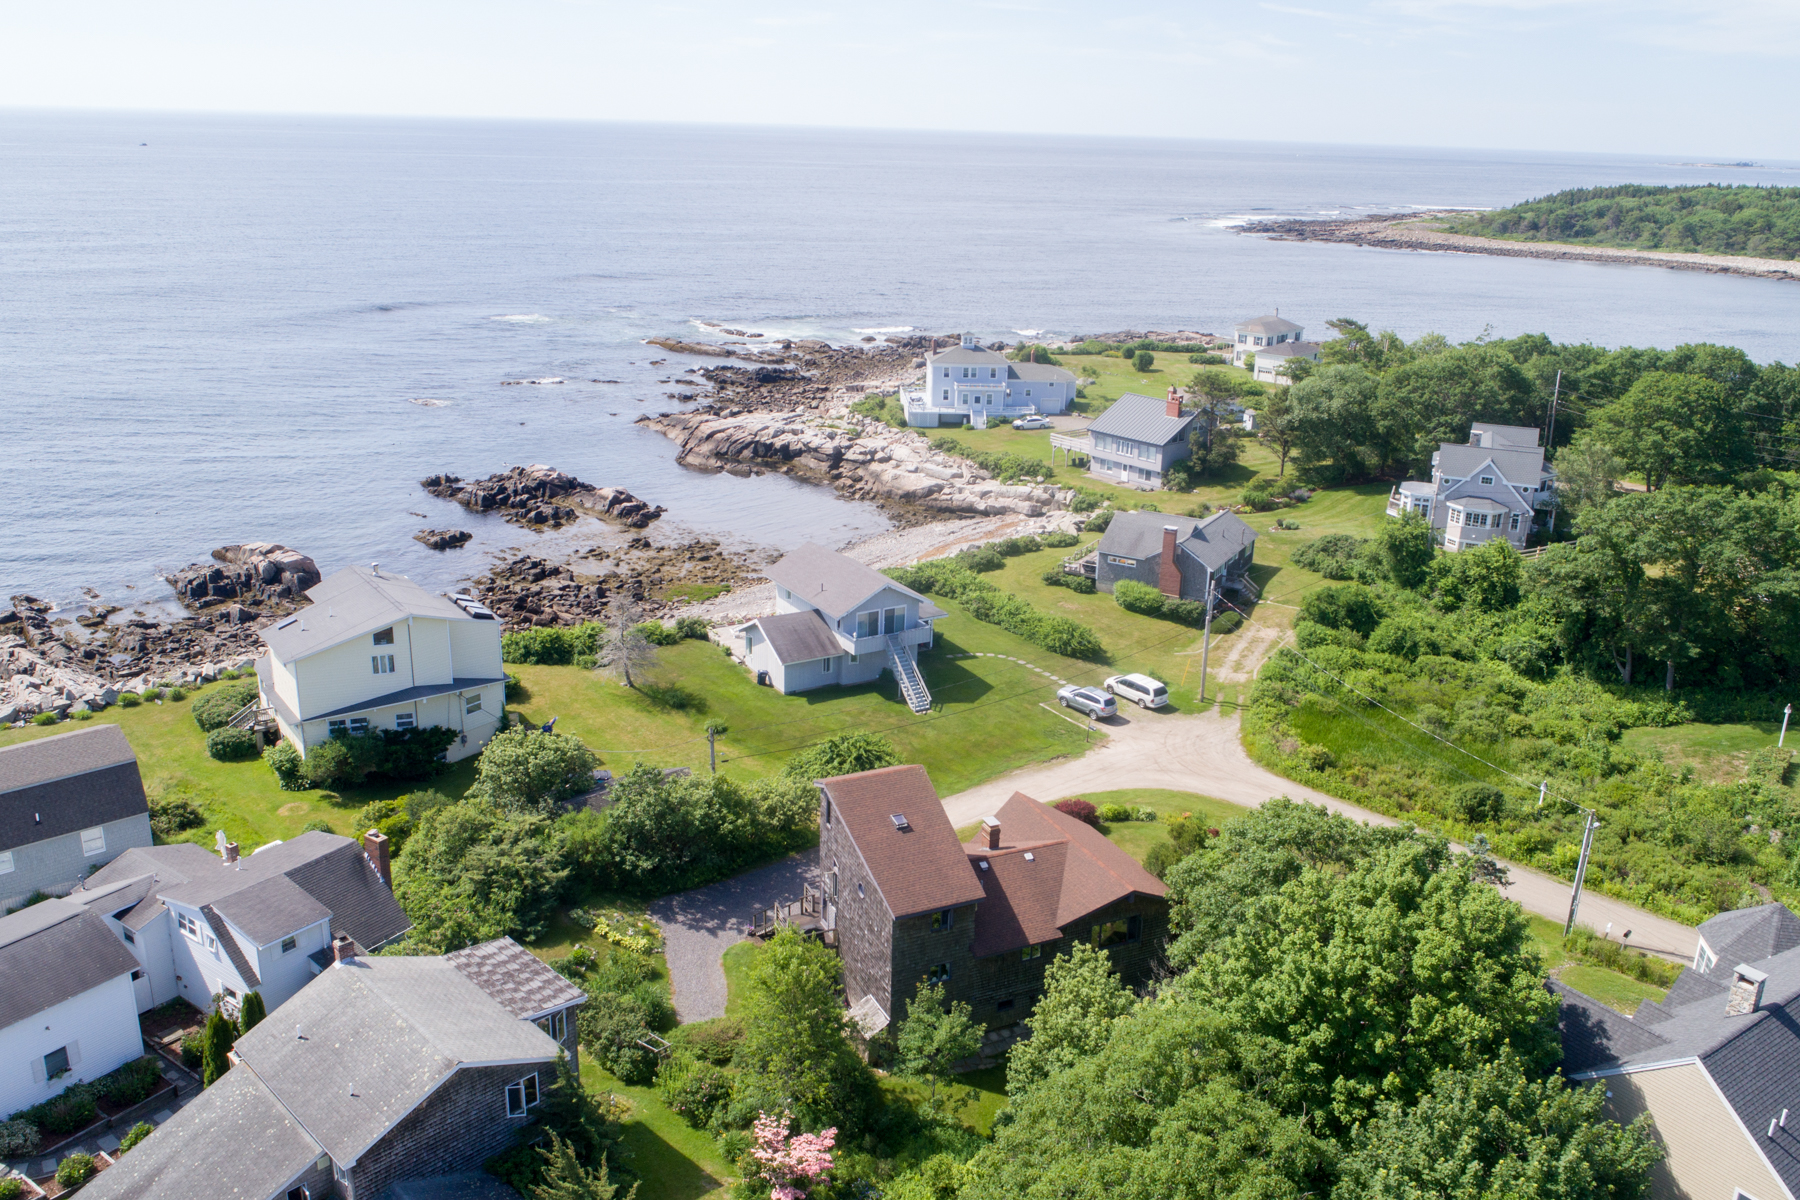 Single Family Home for Sale at 9 East Crescent Cove Lane Biddeford, Maine 04005 United States